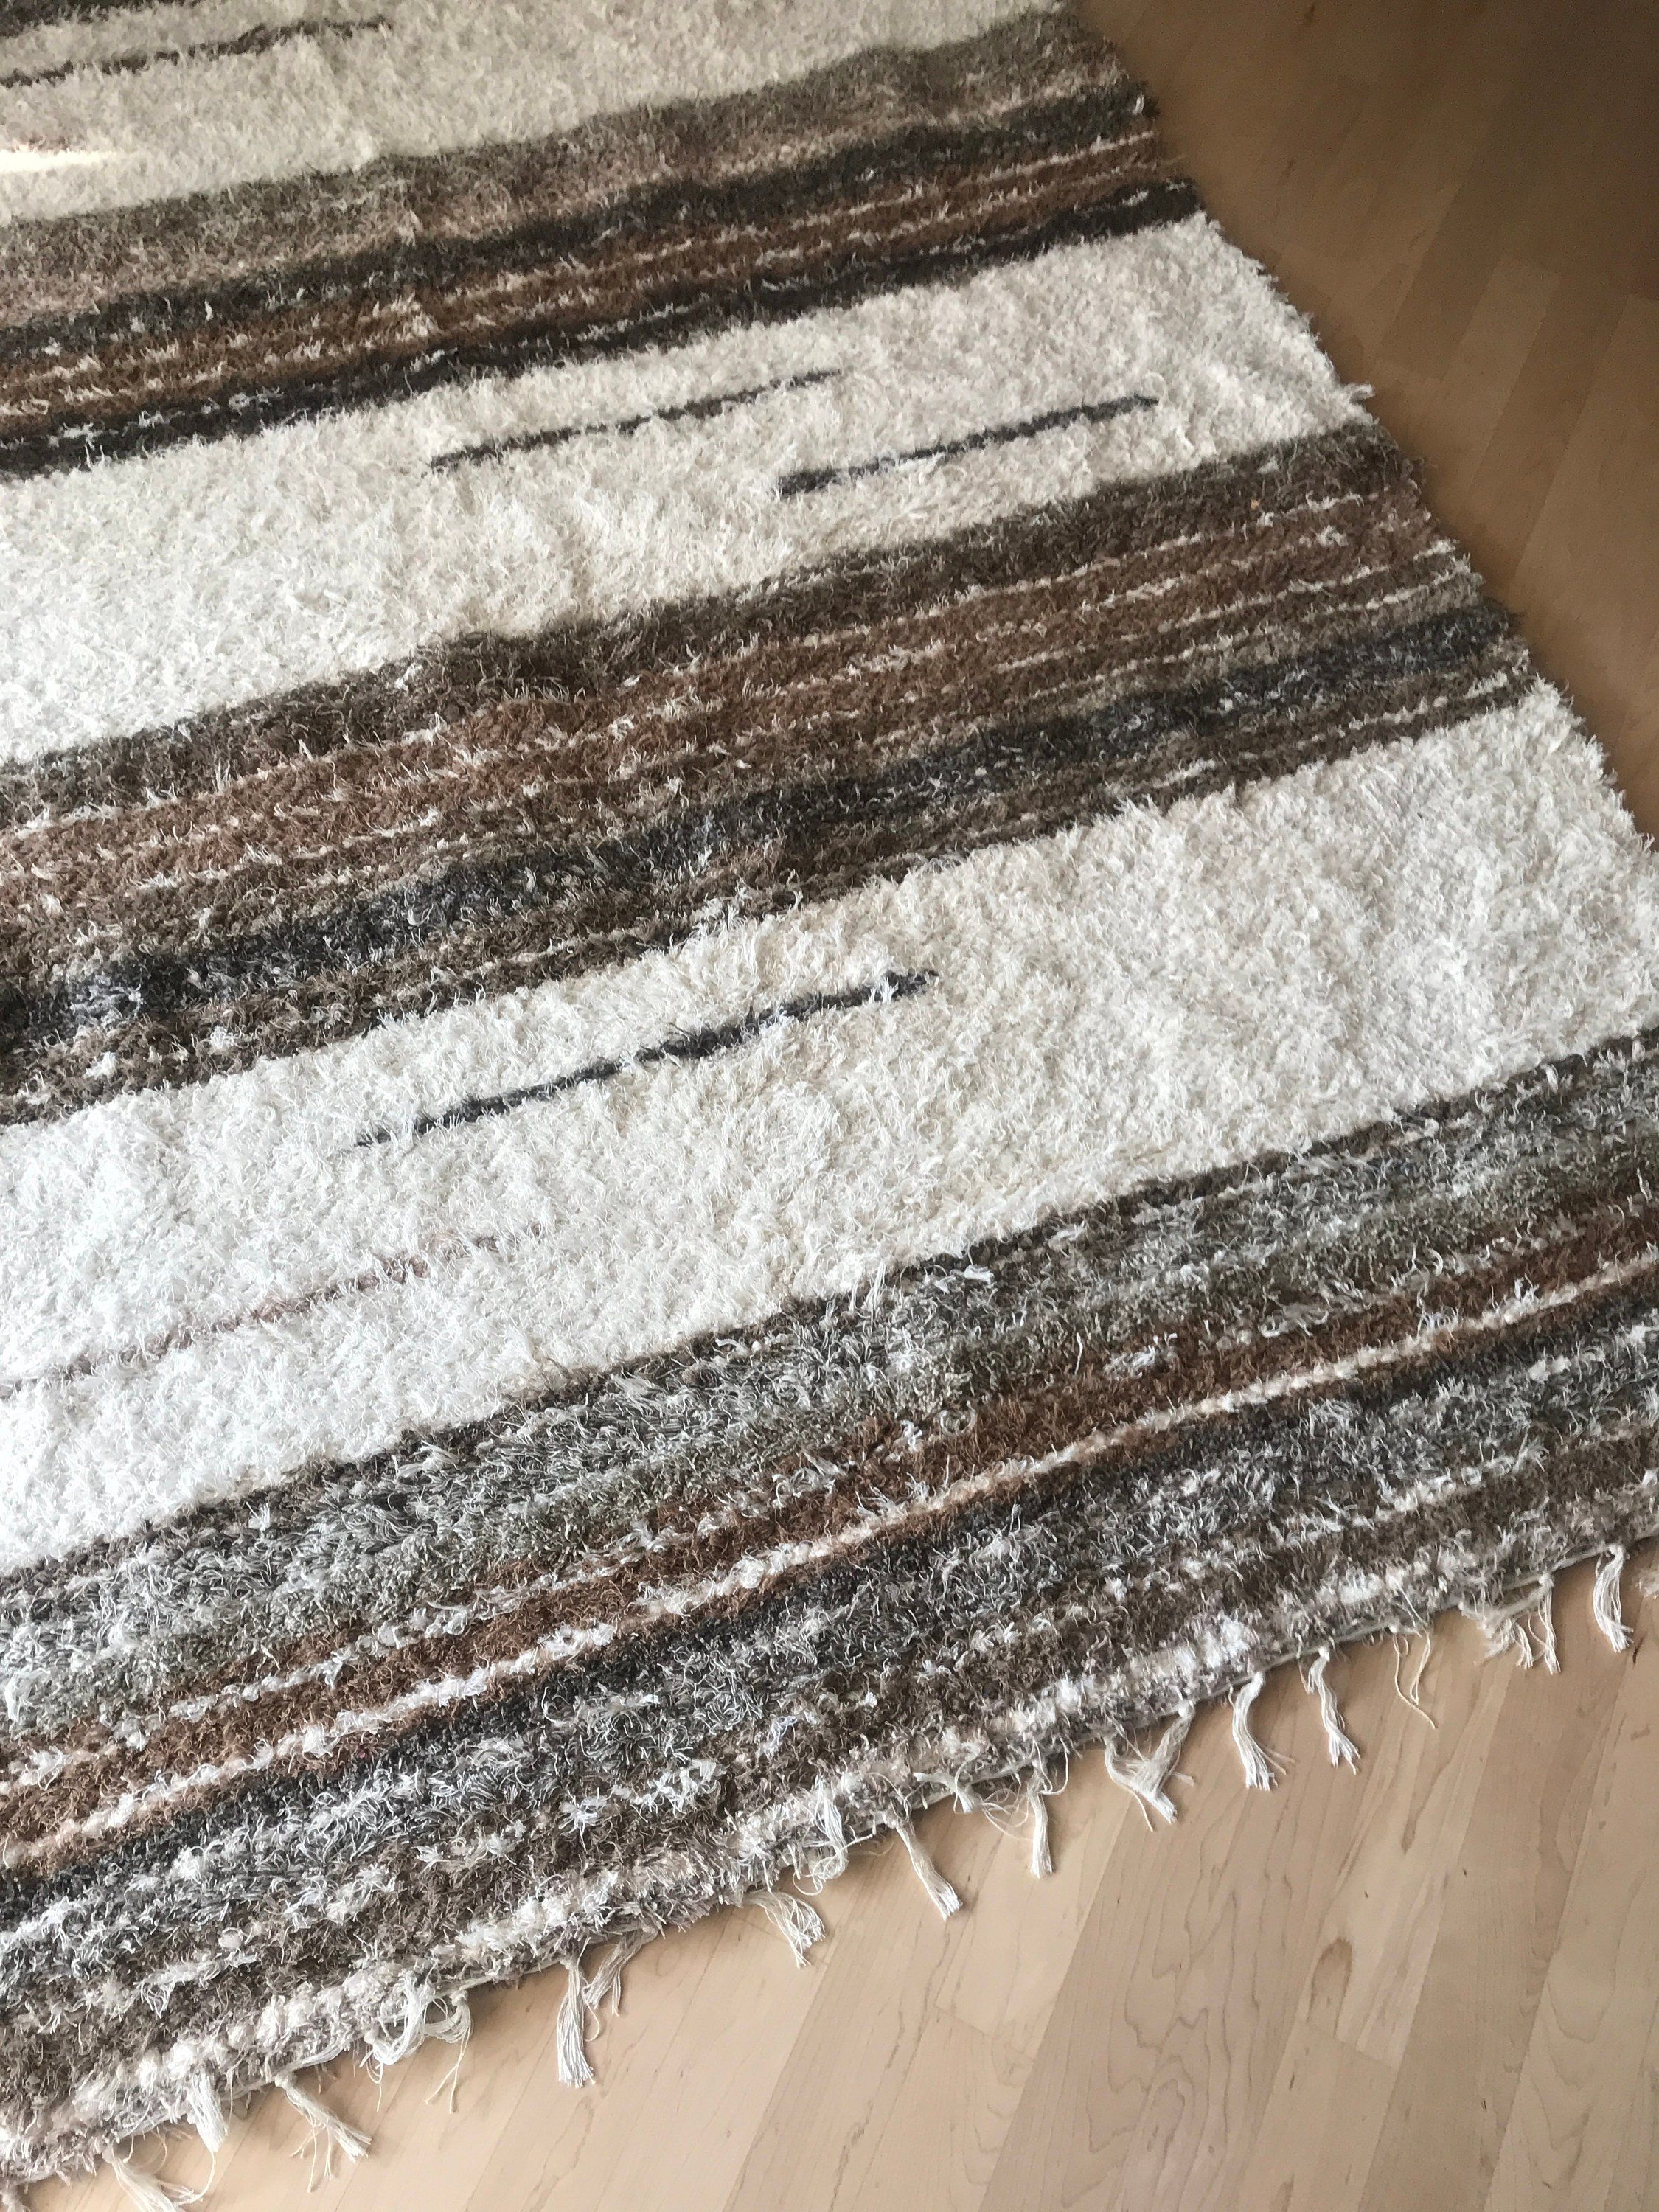 Cotton Striped Rug Handwoven Area Bohemian Rug Light Brown Beige Tones Eco Friendly Large Size Striped Rugs Colorful Striped Rug Colorful Rugs Handwoven Rugs